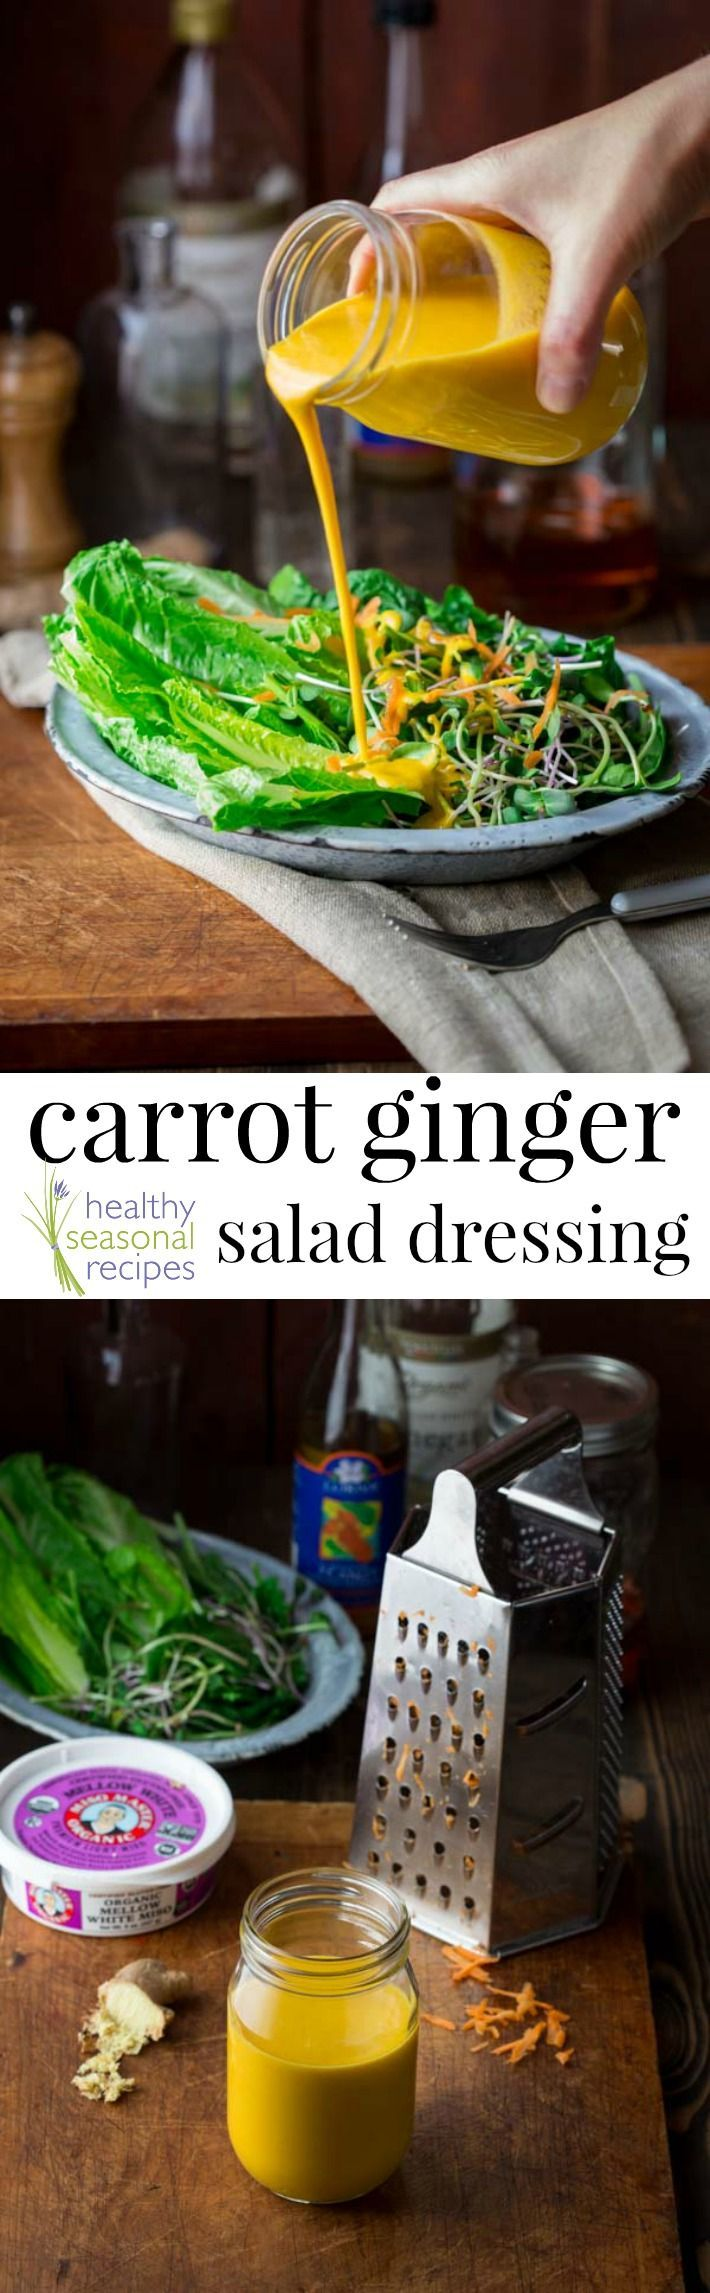 carrot ginger salad dressing - Healthy Seasonal Recipes